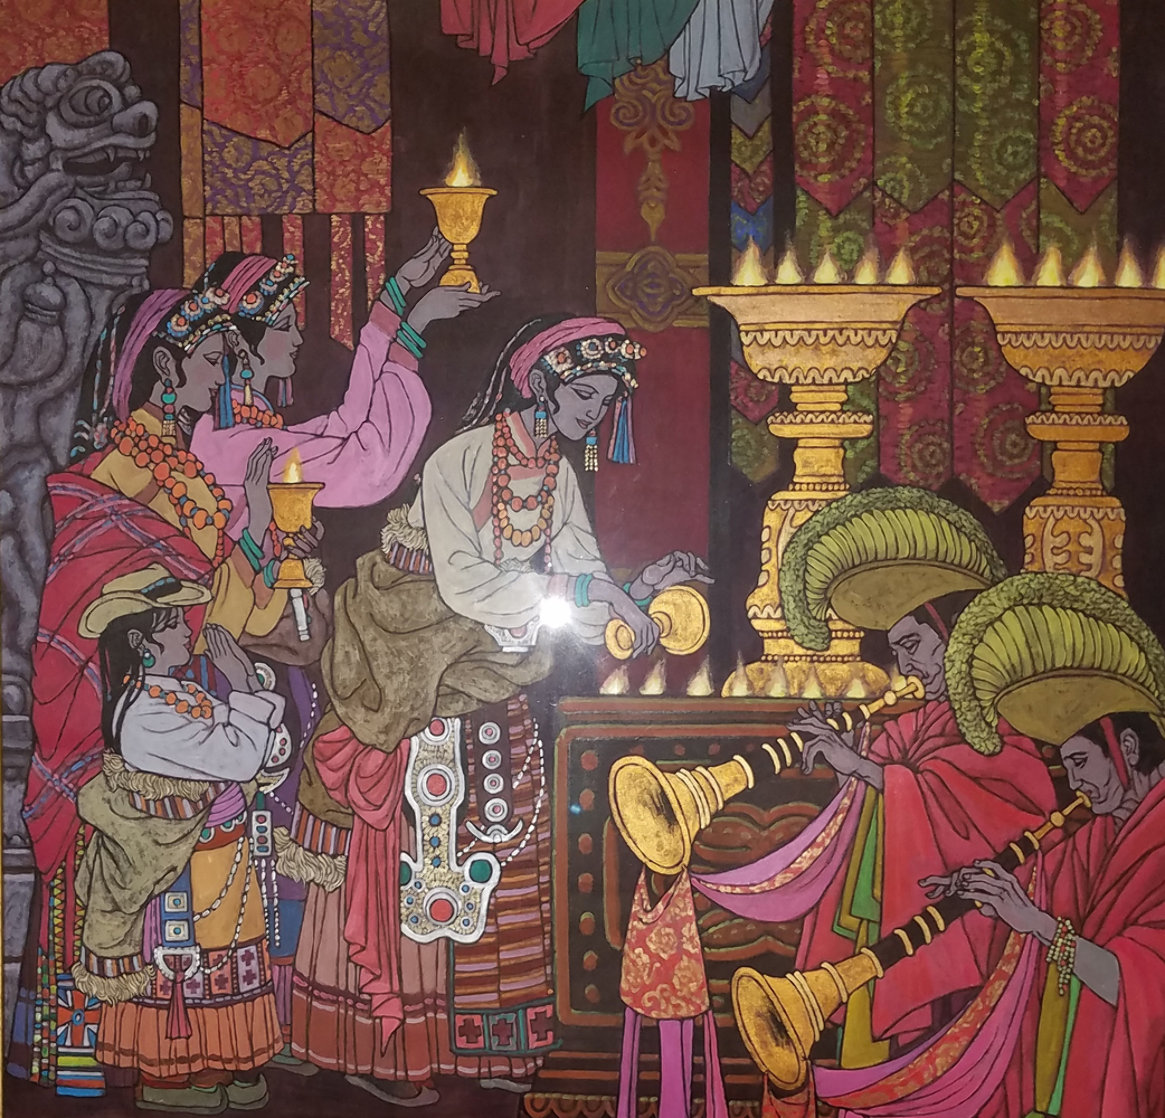 Magical Theatre 2006 50x49 Super Huge Original Painting by Zu Ming Ho